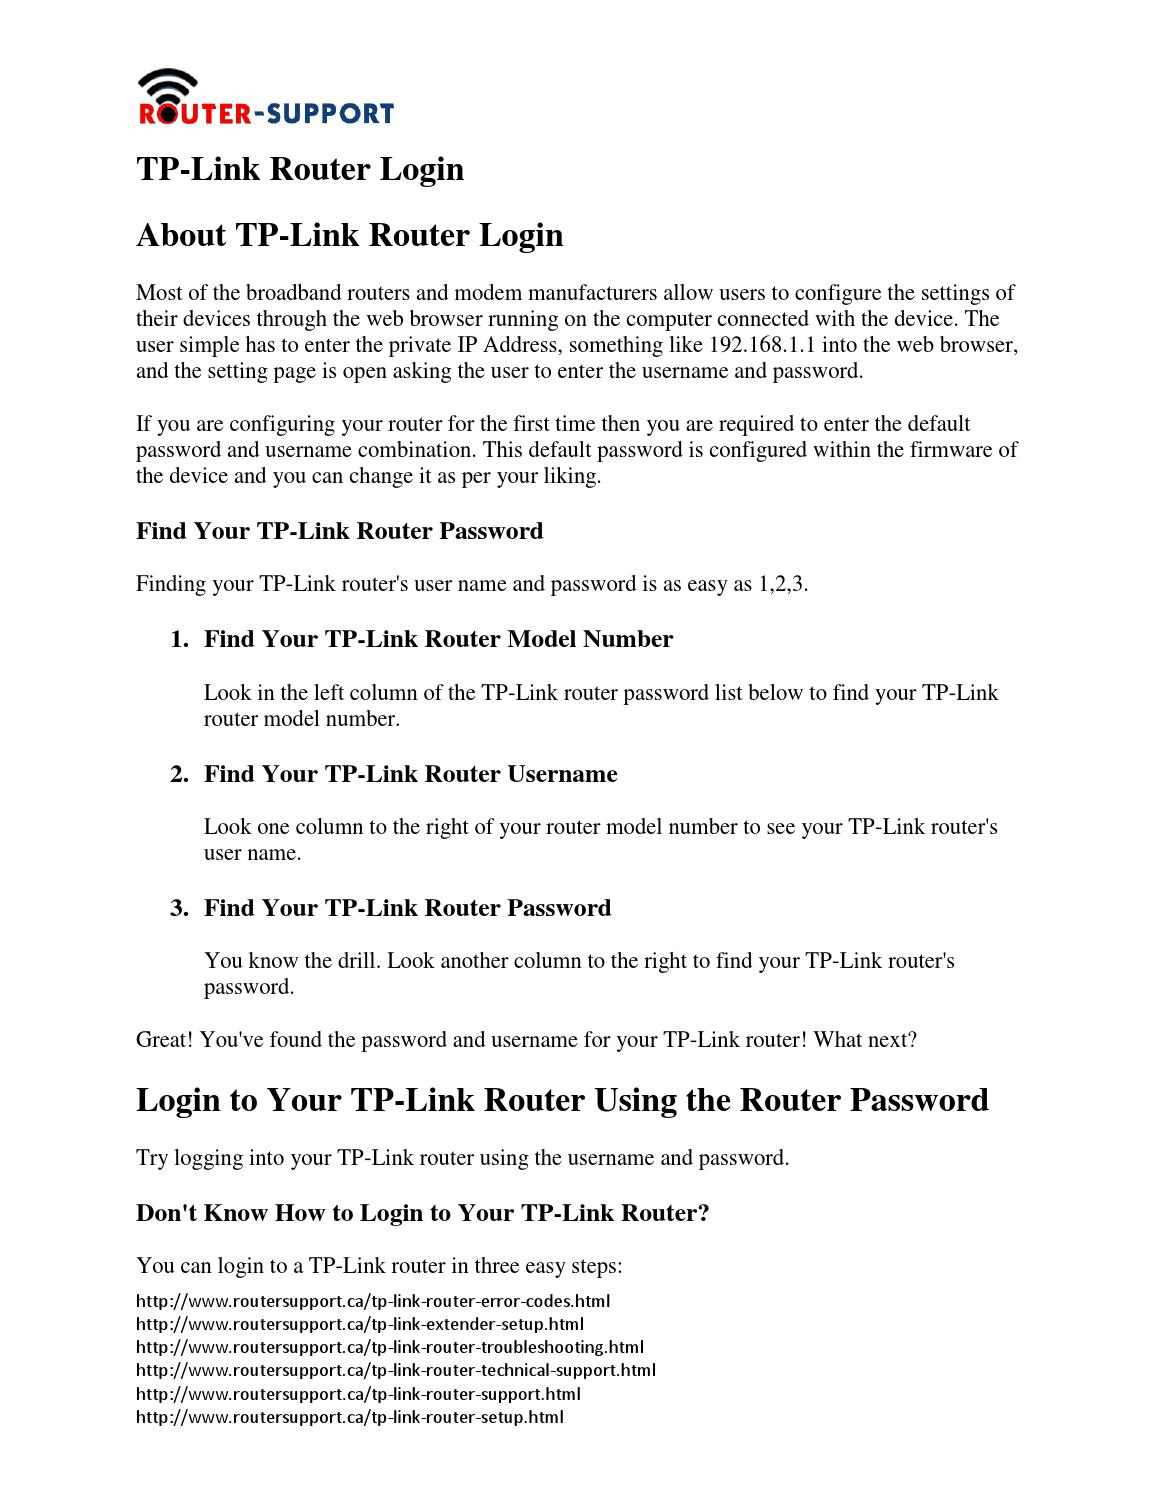 Tp link router login by Routersupportcanada - issuu